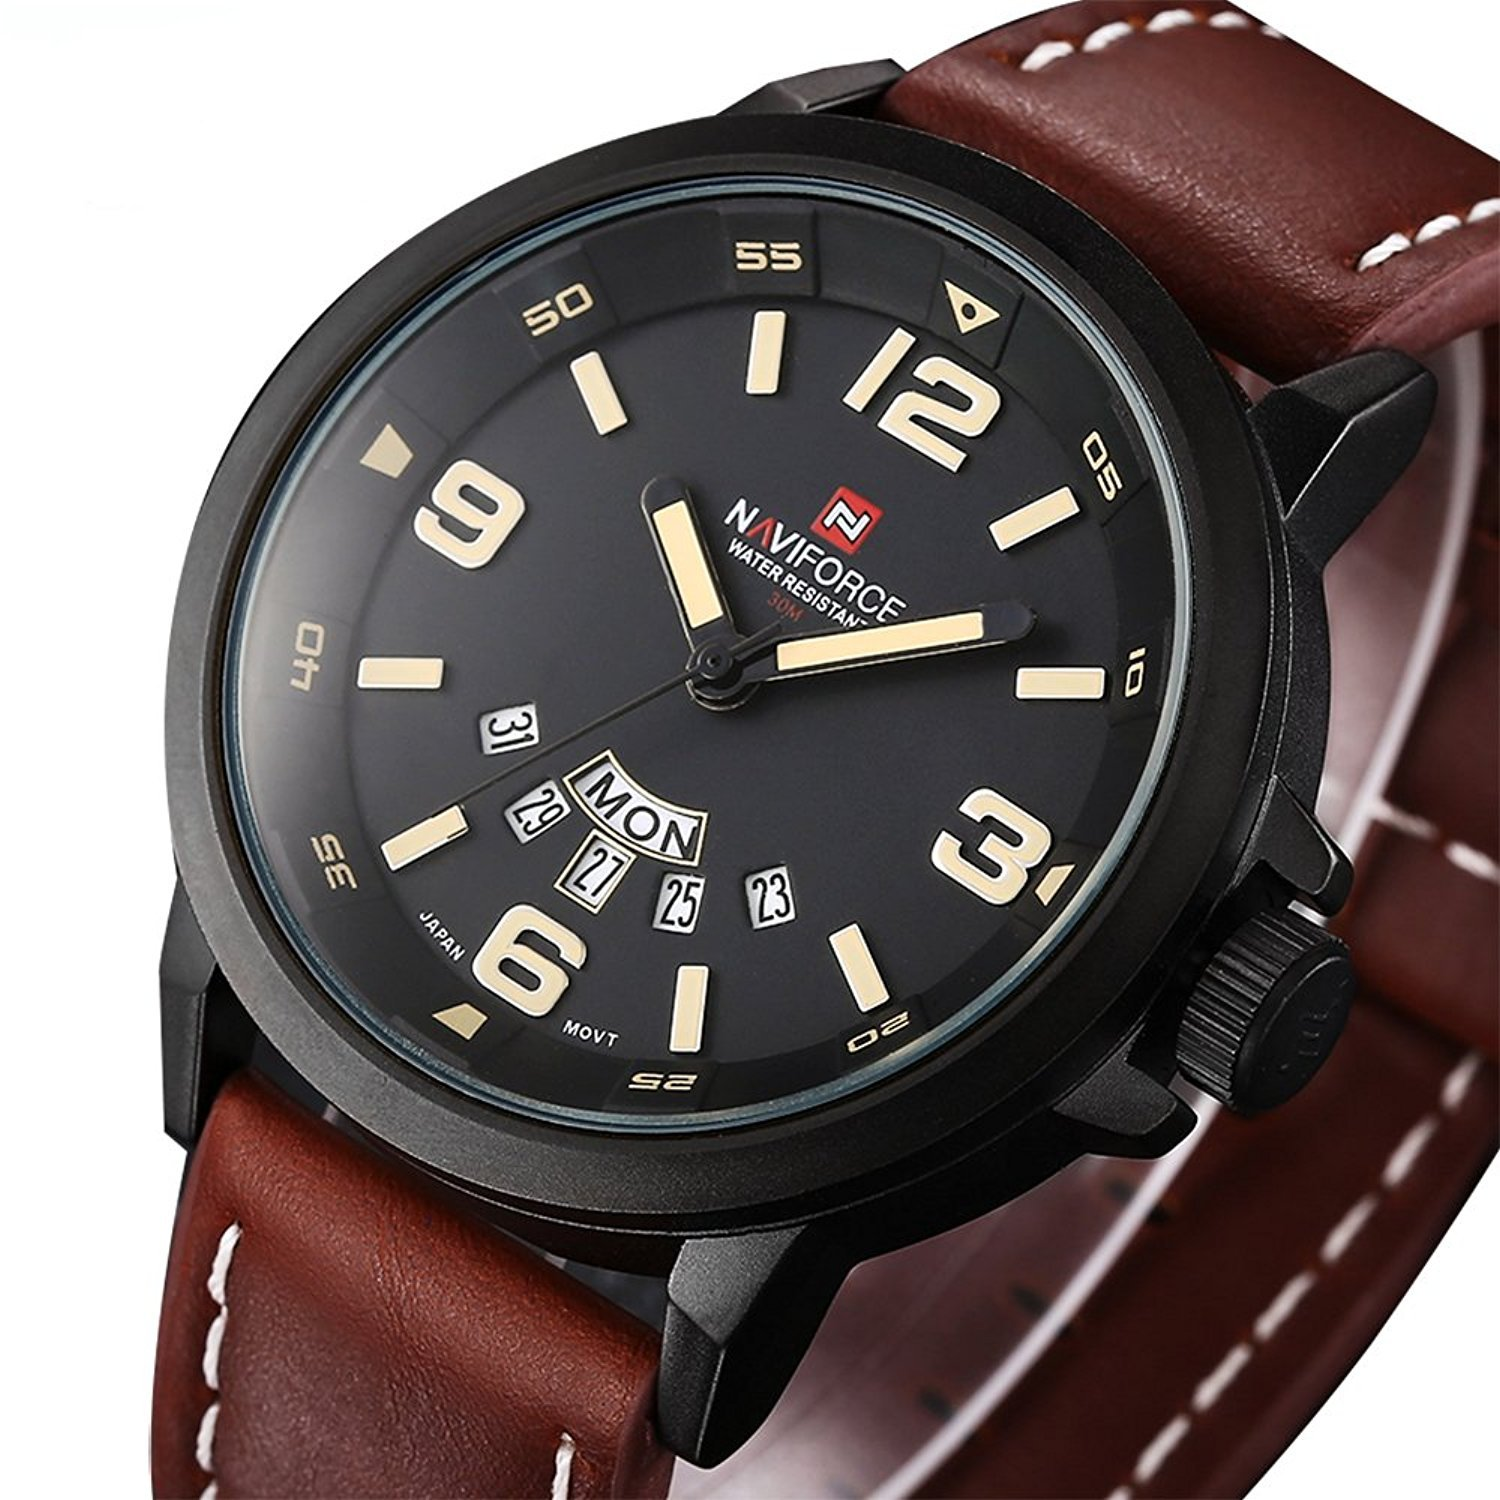 big amazon week unique with black leather dress com mens watches watch brown date quartz calendar casual face band business retro fashion dp number analog classic waterproof wristwatch wrist